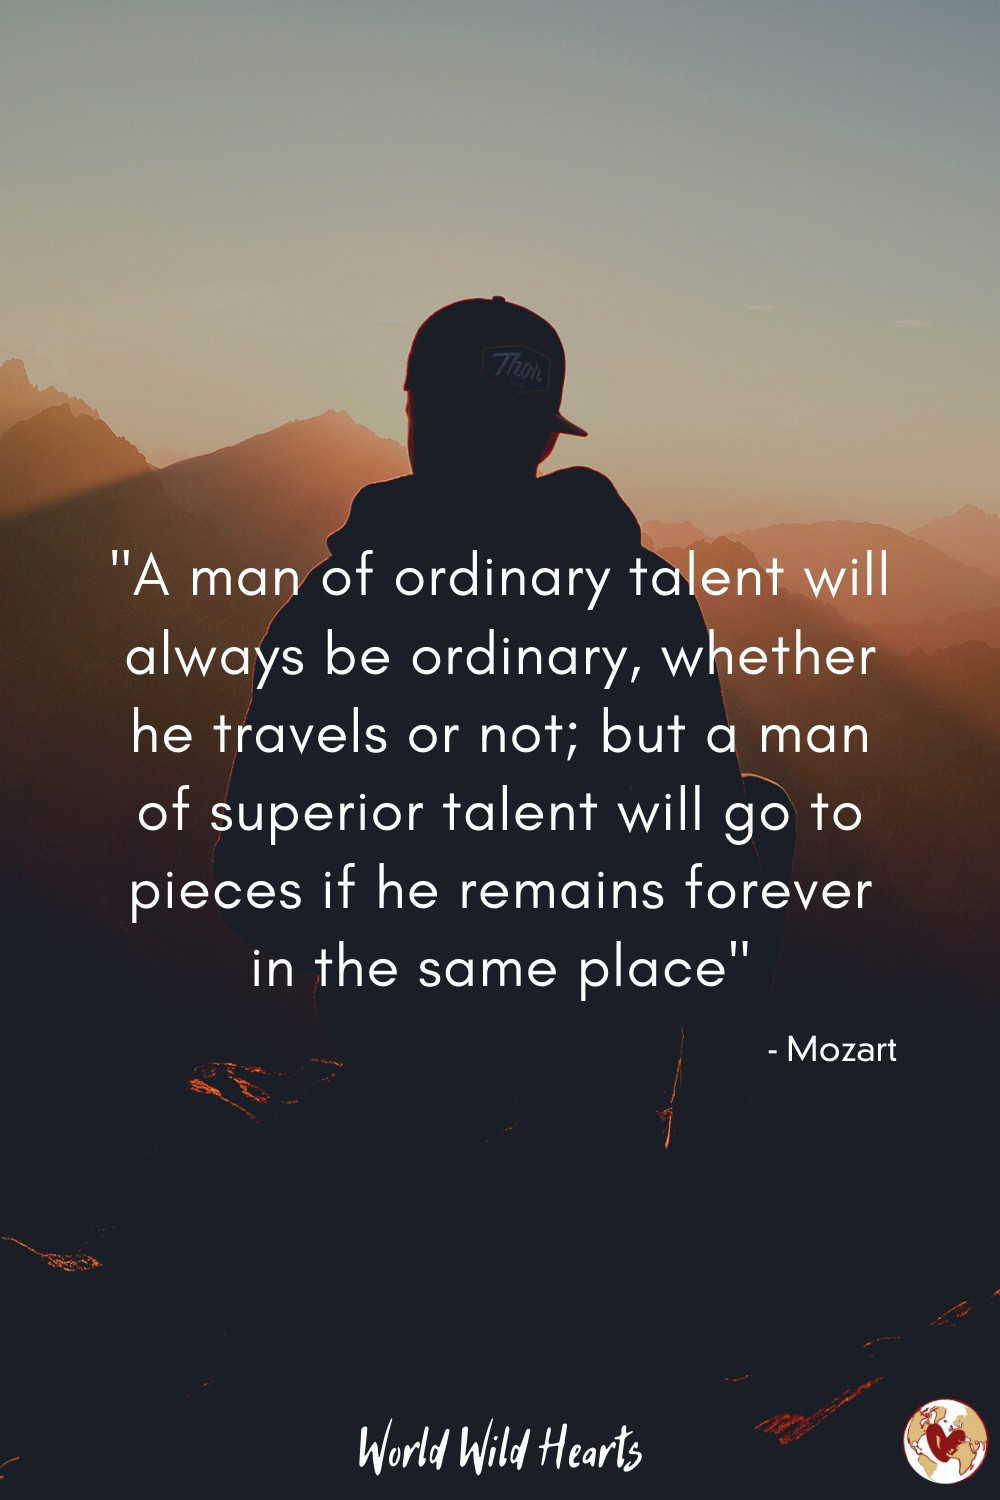 Famous travel quote by musician